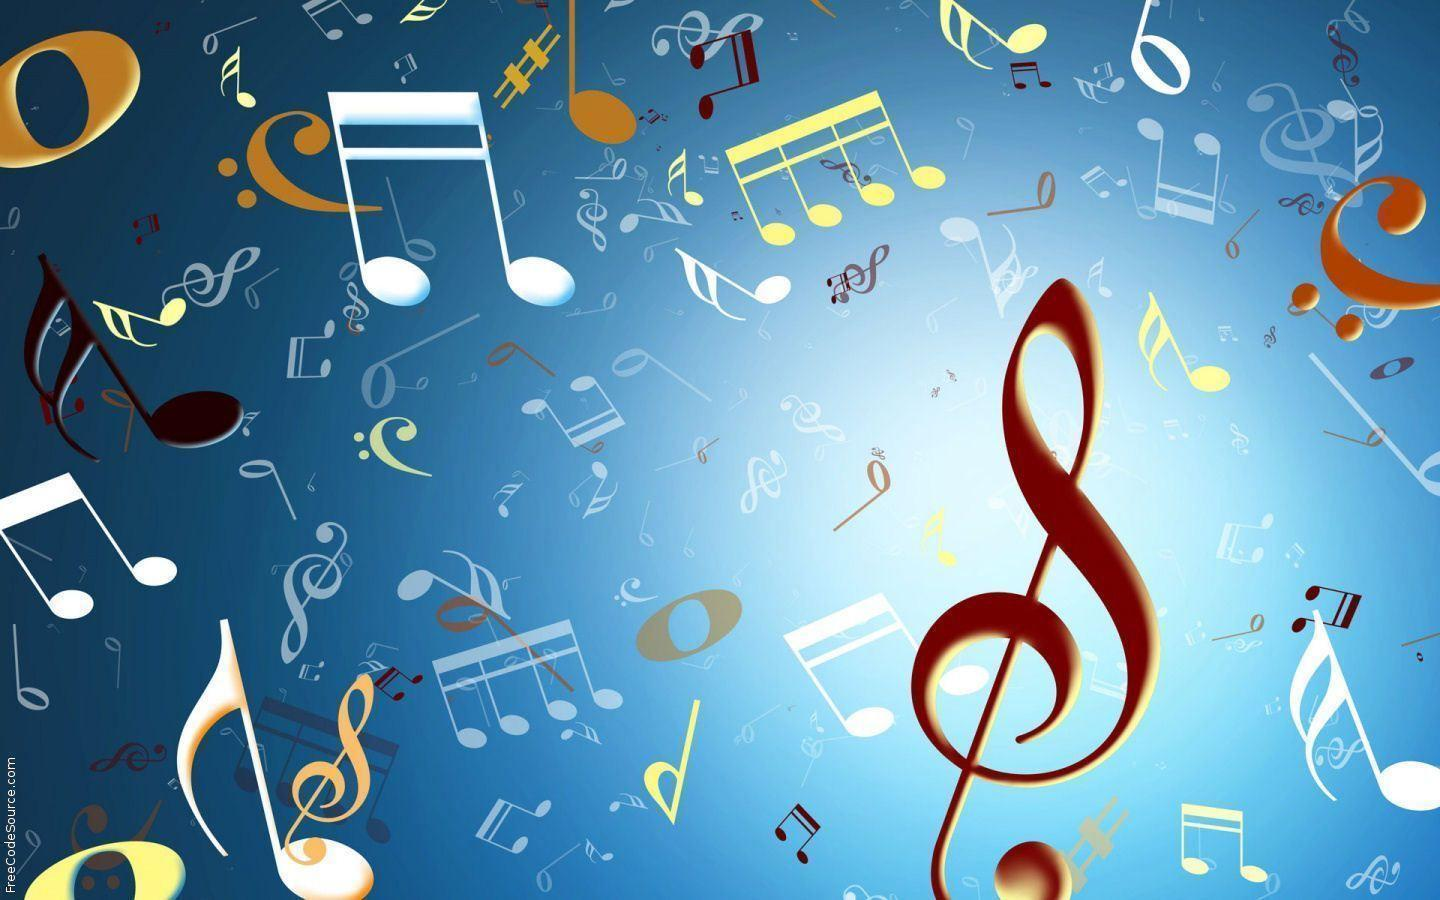 Music Background Images: Music Notes Backgrounds